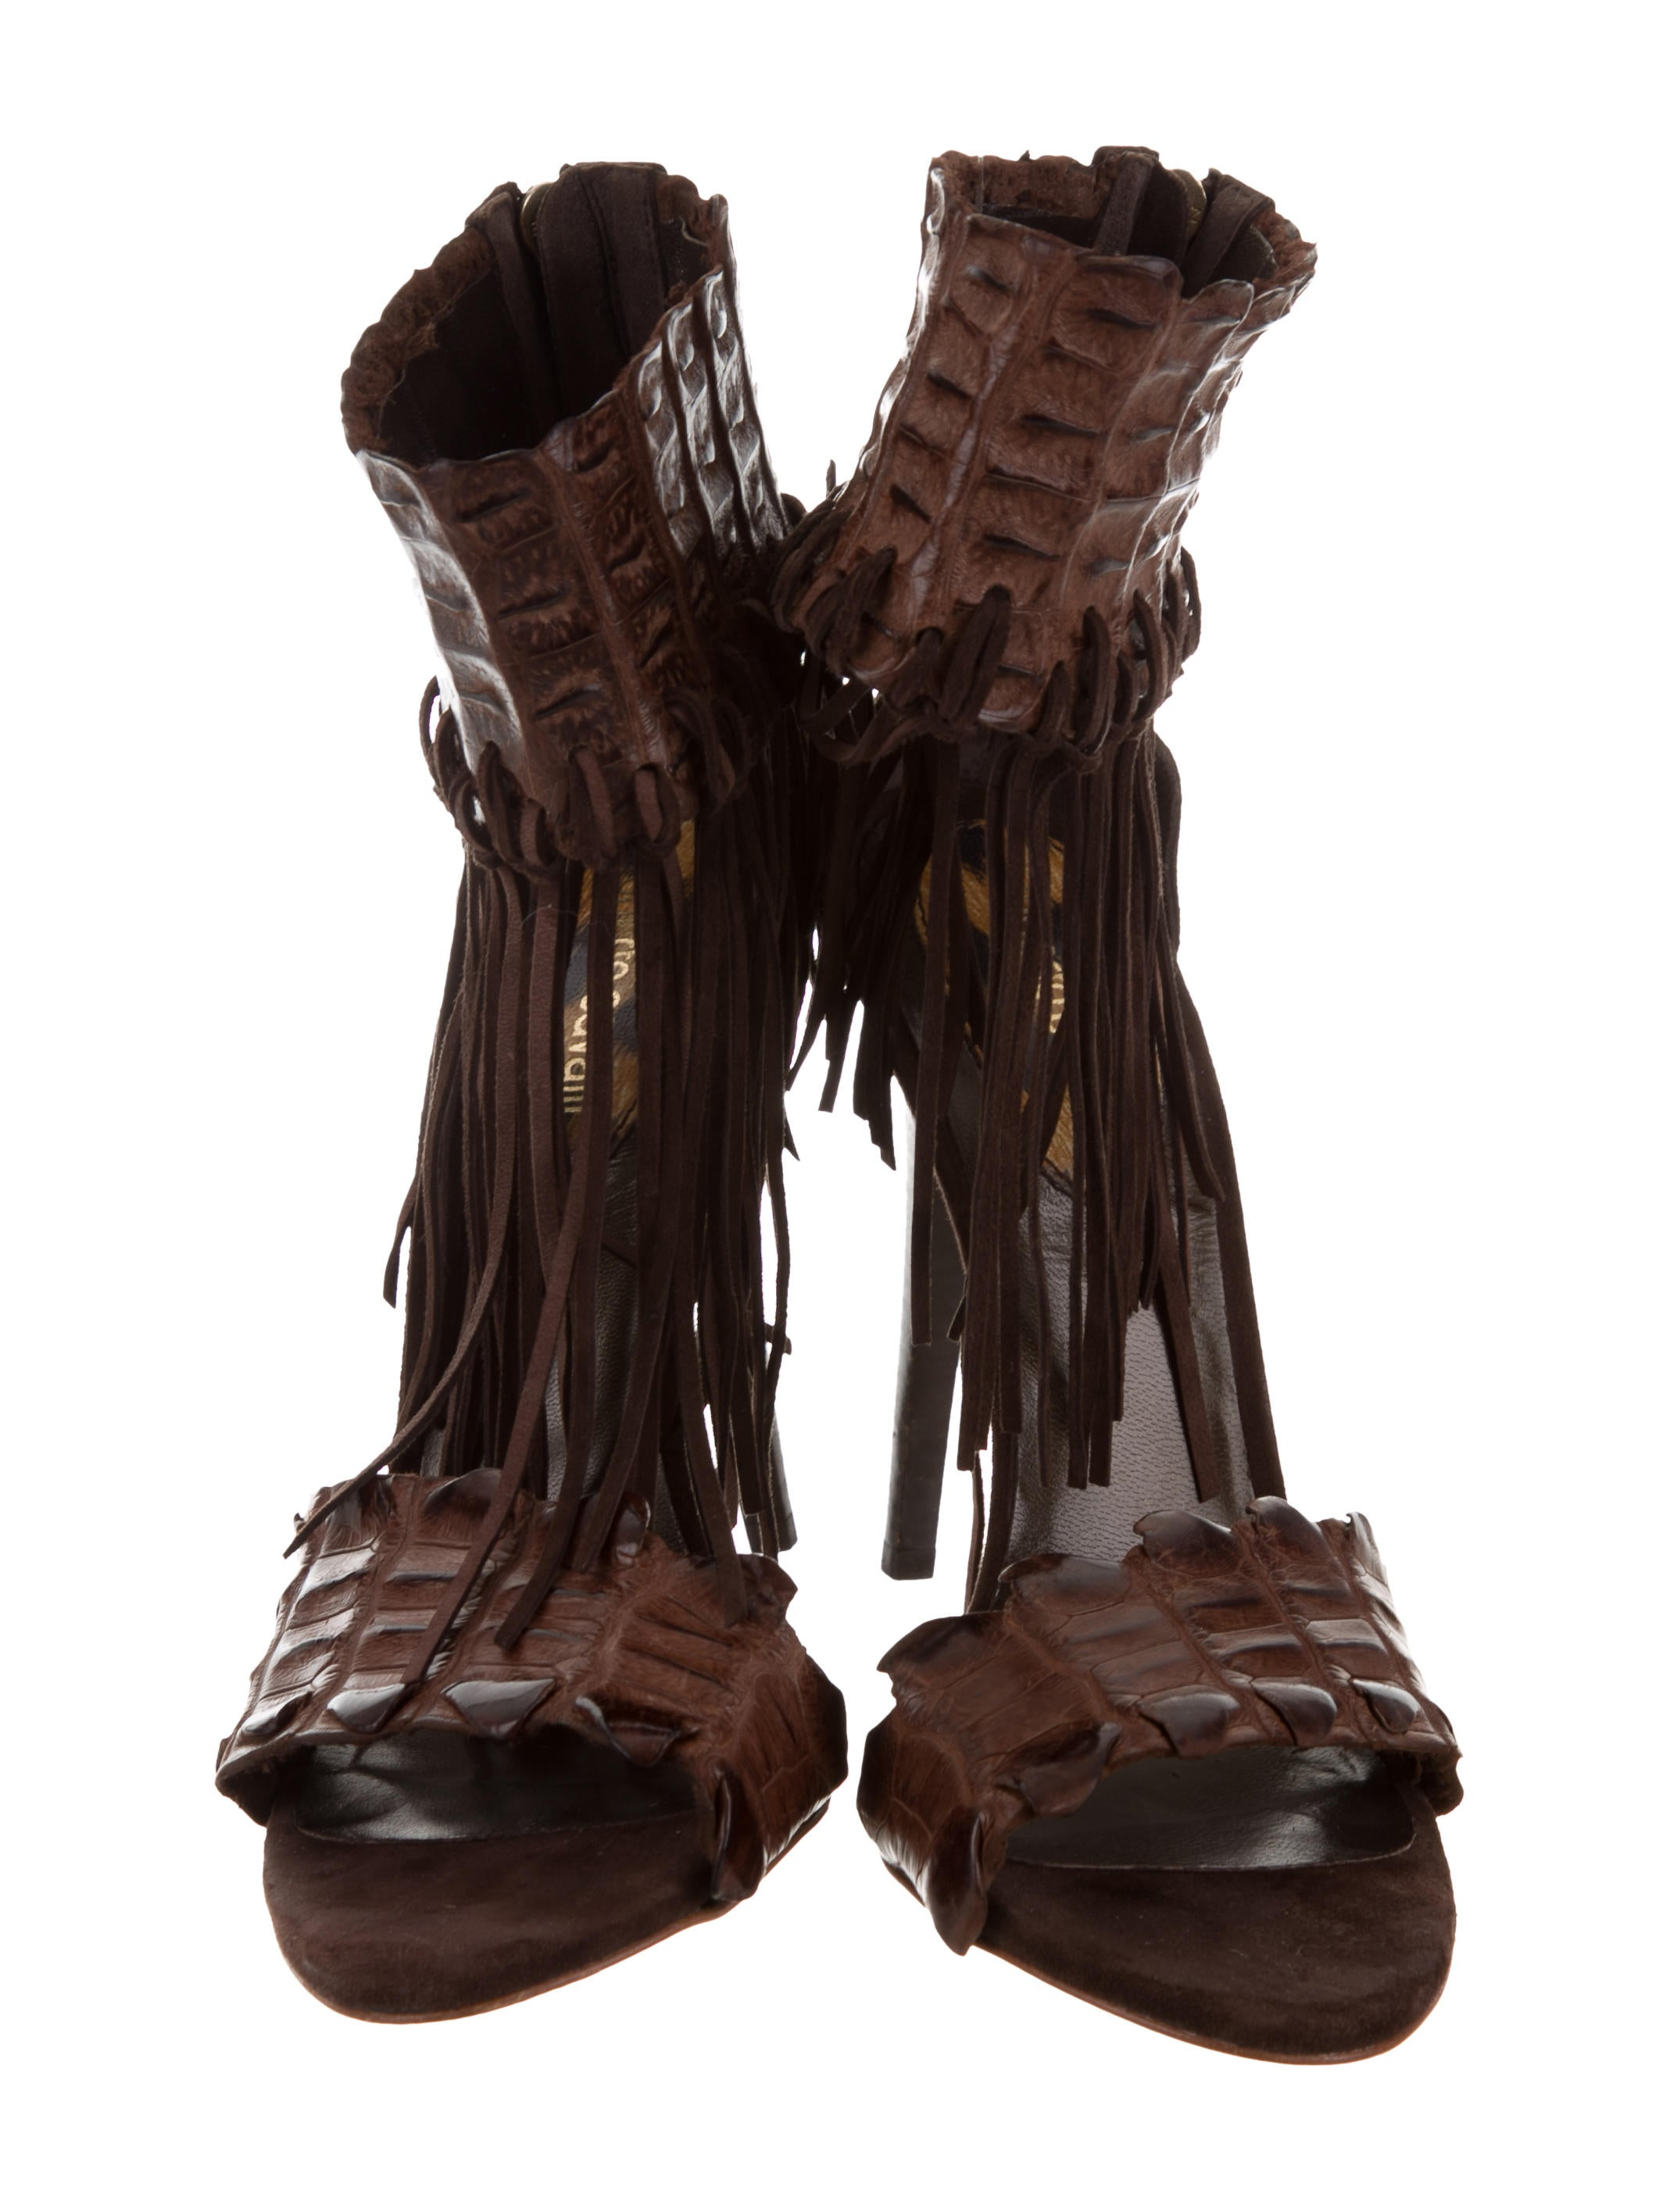 Roberto Cavalli Alligator Fringe Sandals clearance new arrival brand new unisex cheap online discount high quality outlet wiki qC1WRB7h